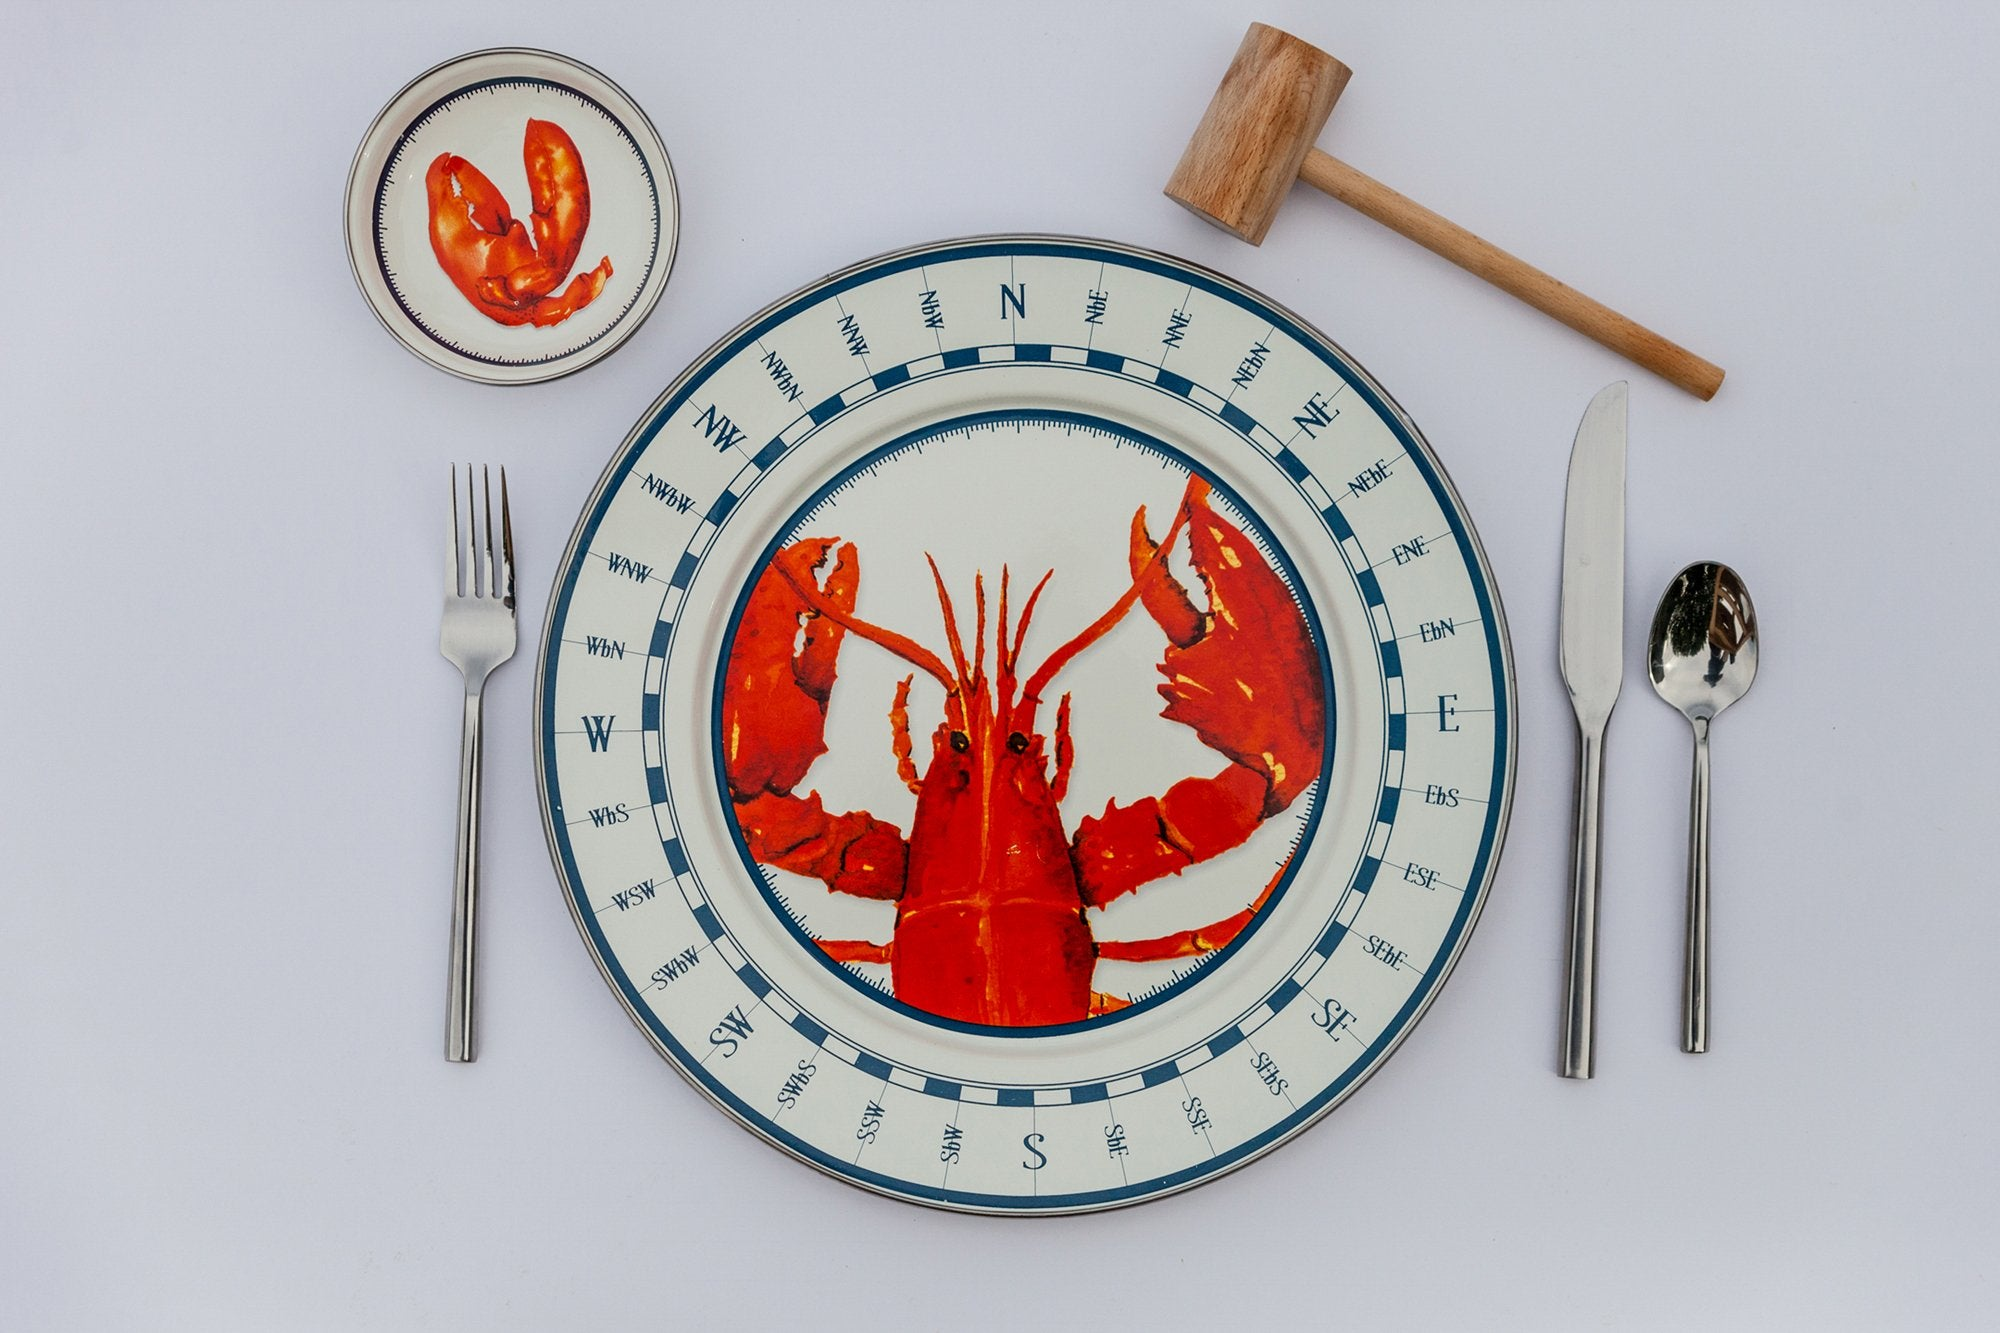 LS11S4 - Set of 1 Lobster Sandwich Plates Lifestyle 1